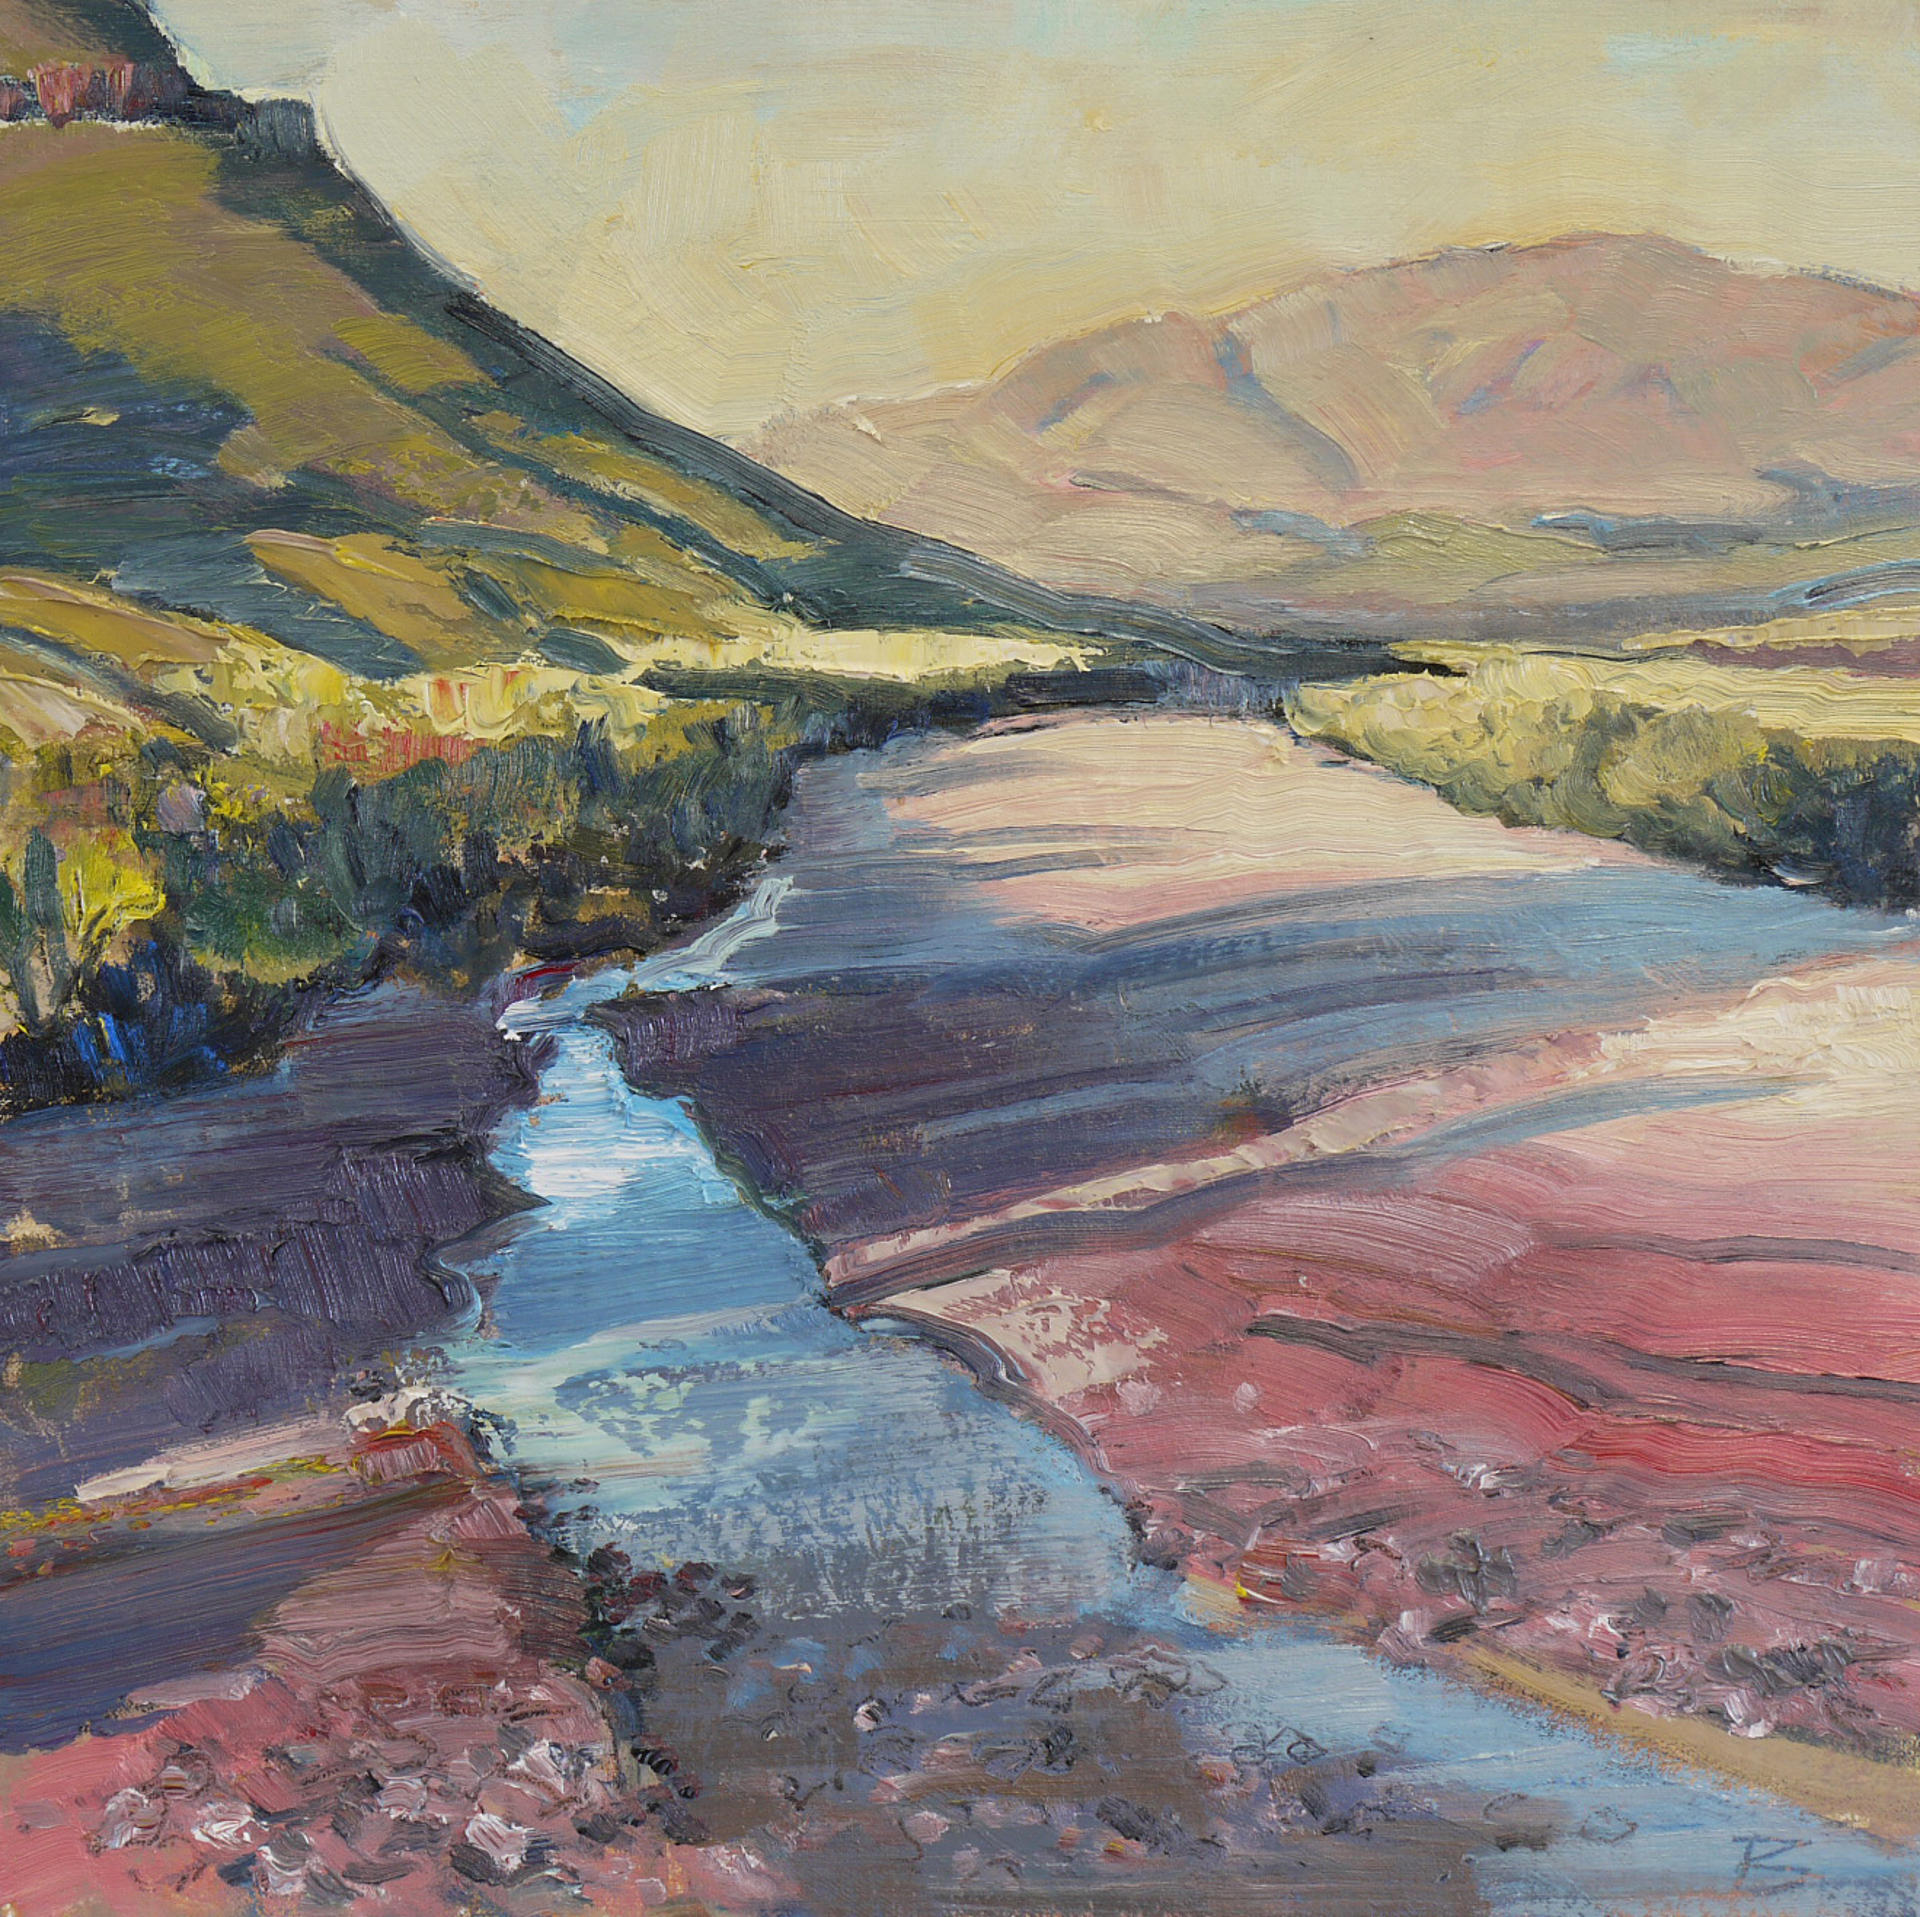 Study for Small Creek in a Canyon by Mary Baxter